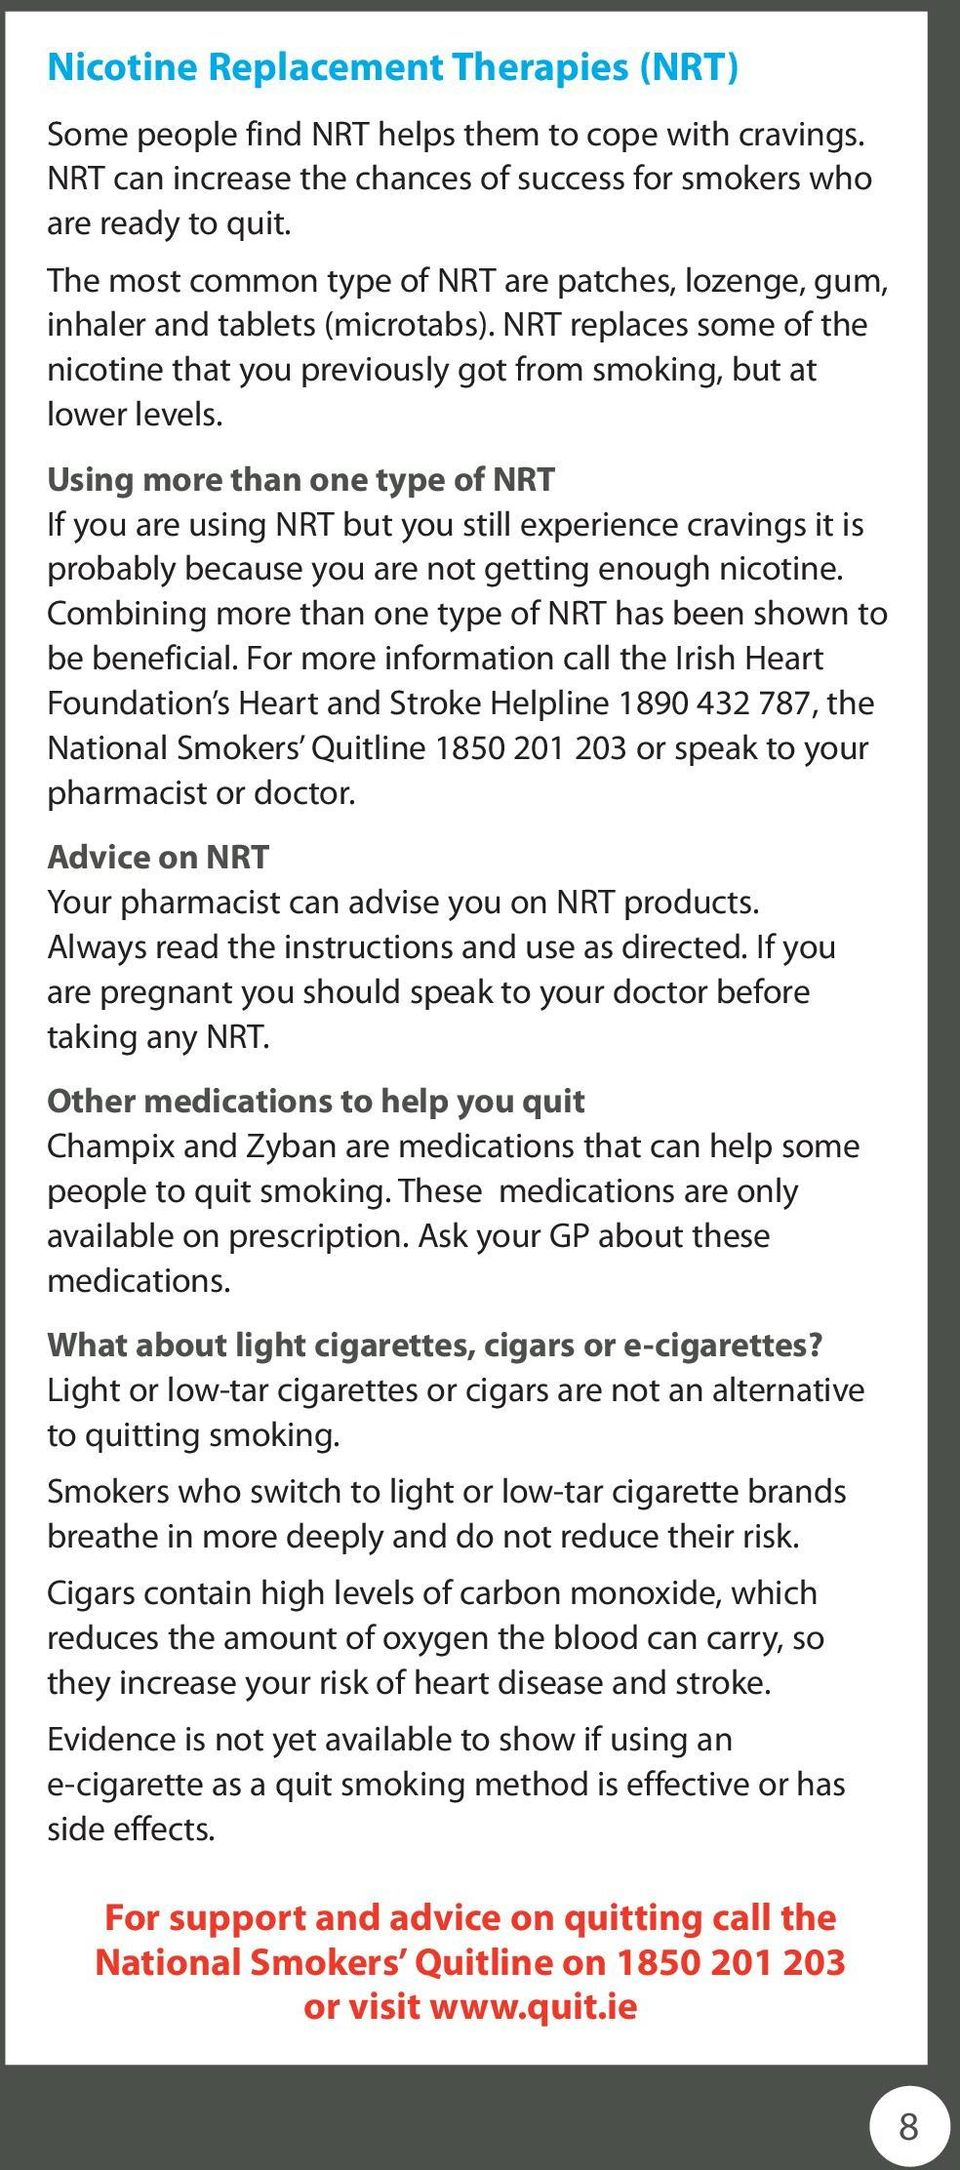 Using more than one type of NRT If you are using NRT but you still experience cravings it is probably because you are not getting enough nicotine.